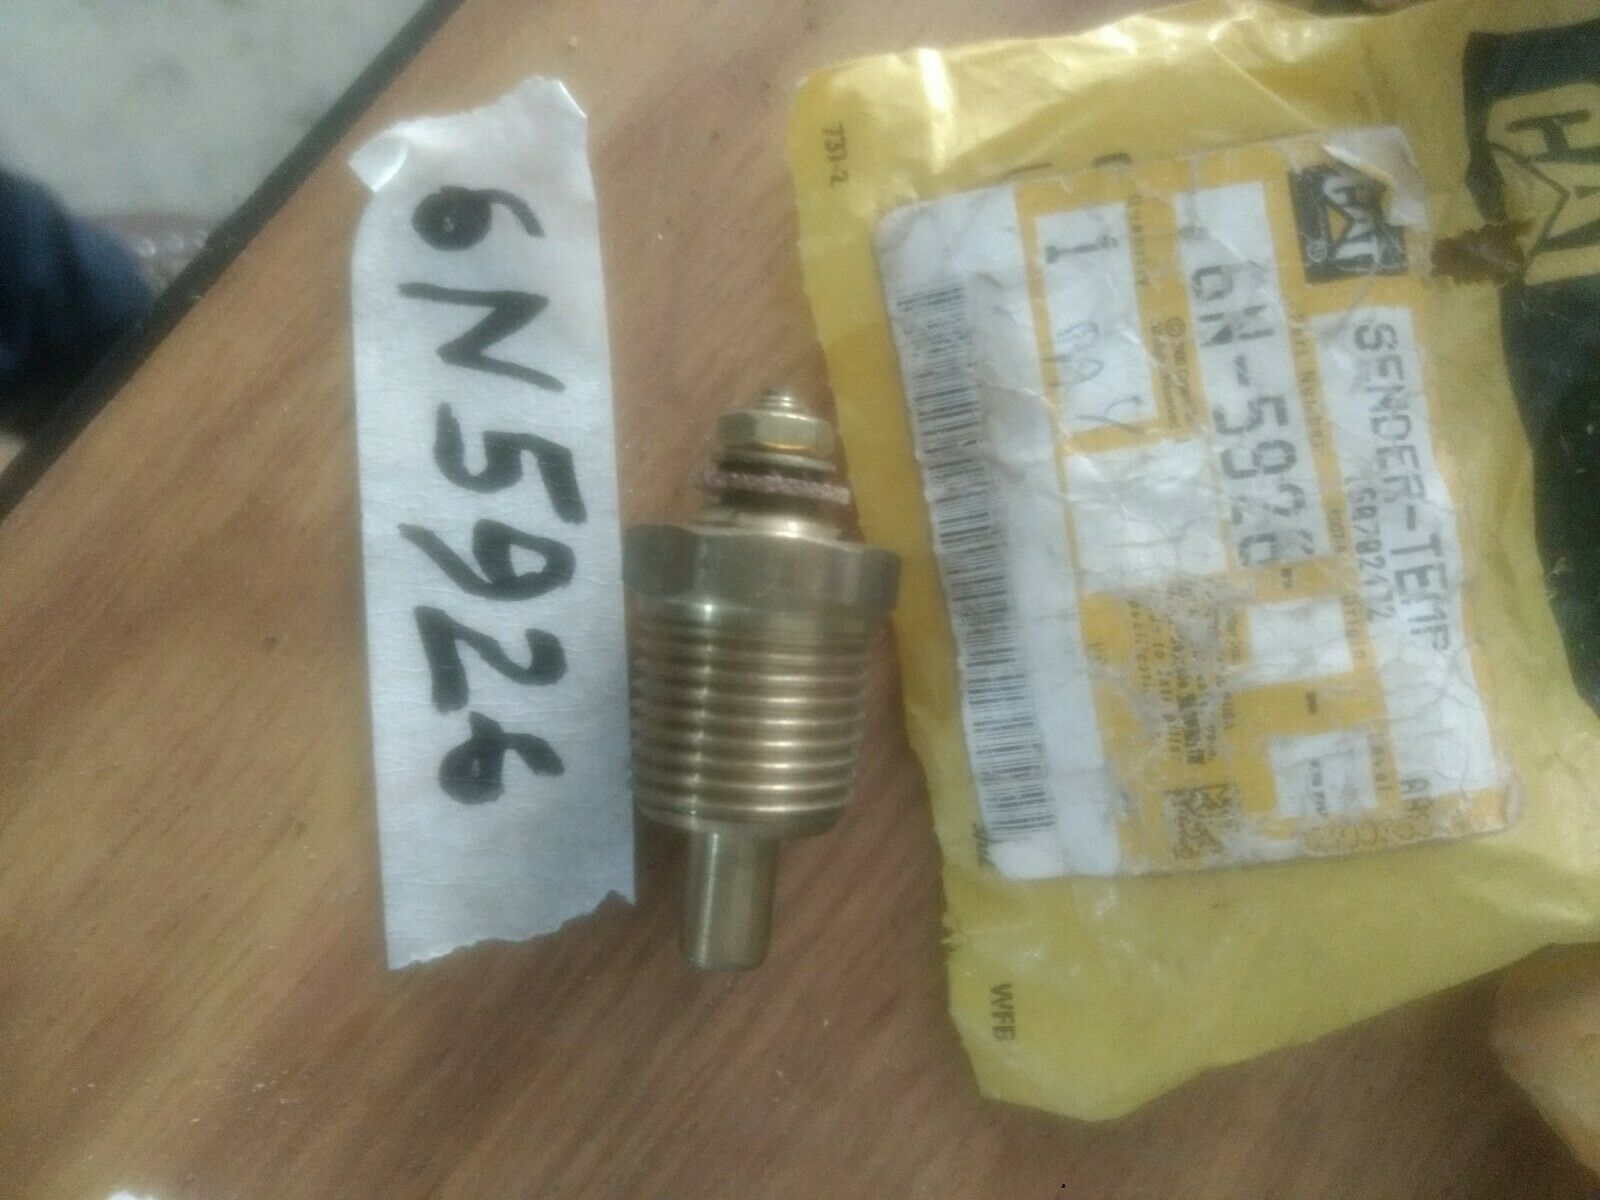 CATERPILLAR SENDER-TEMP 6N5926 NEW